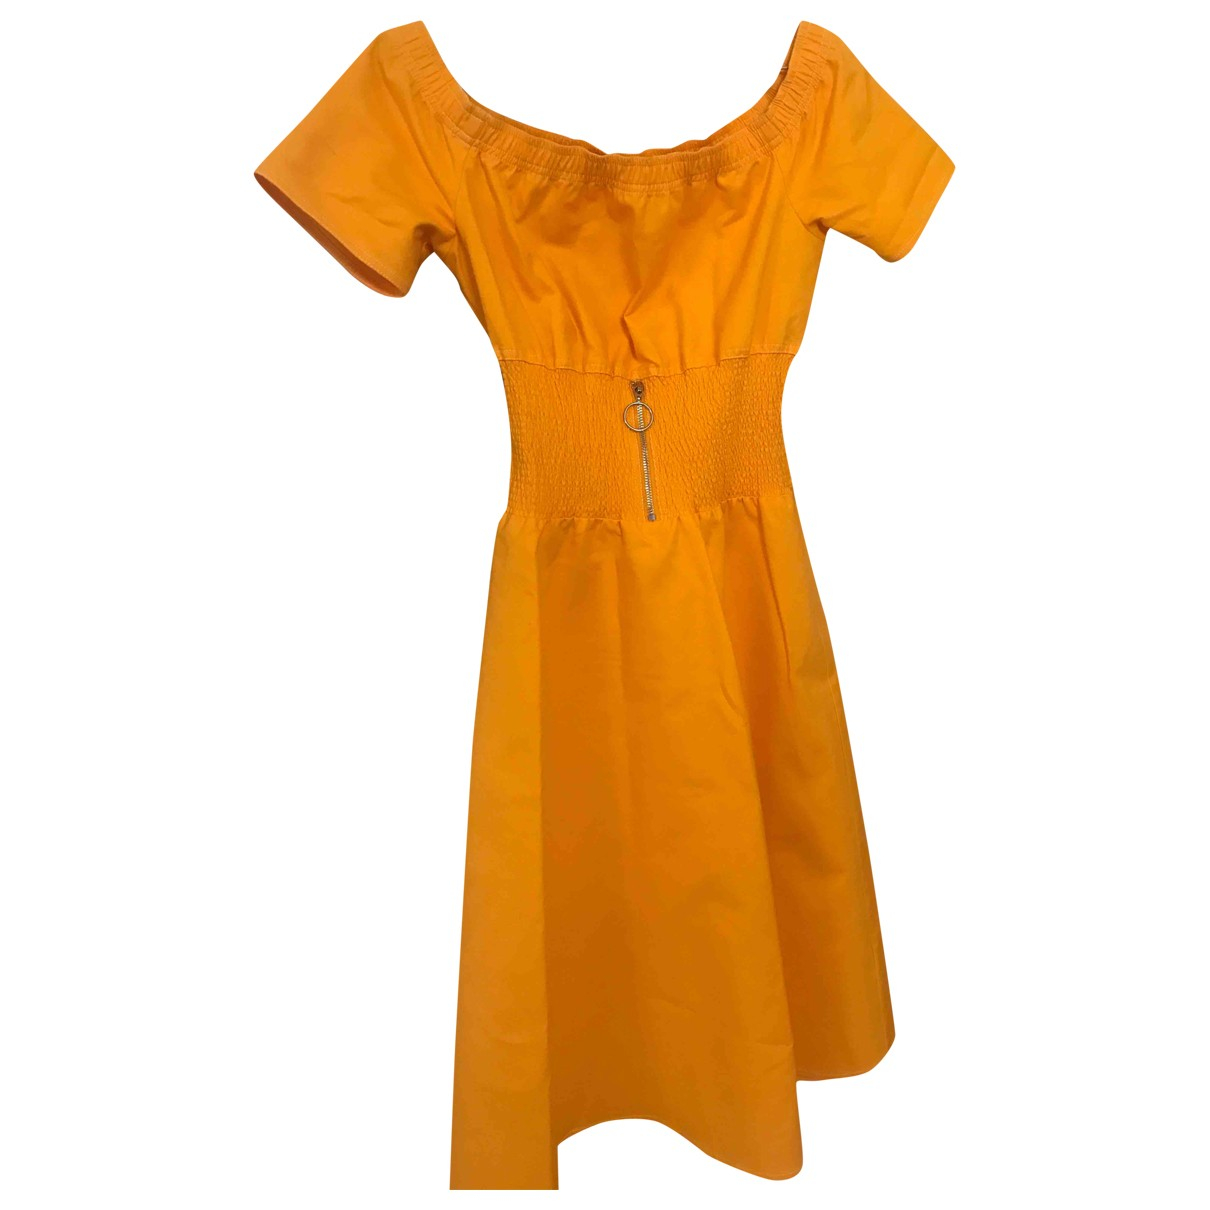 Maje \N Yellow Cotton dress for Women 38 FR